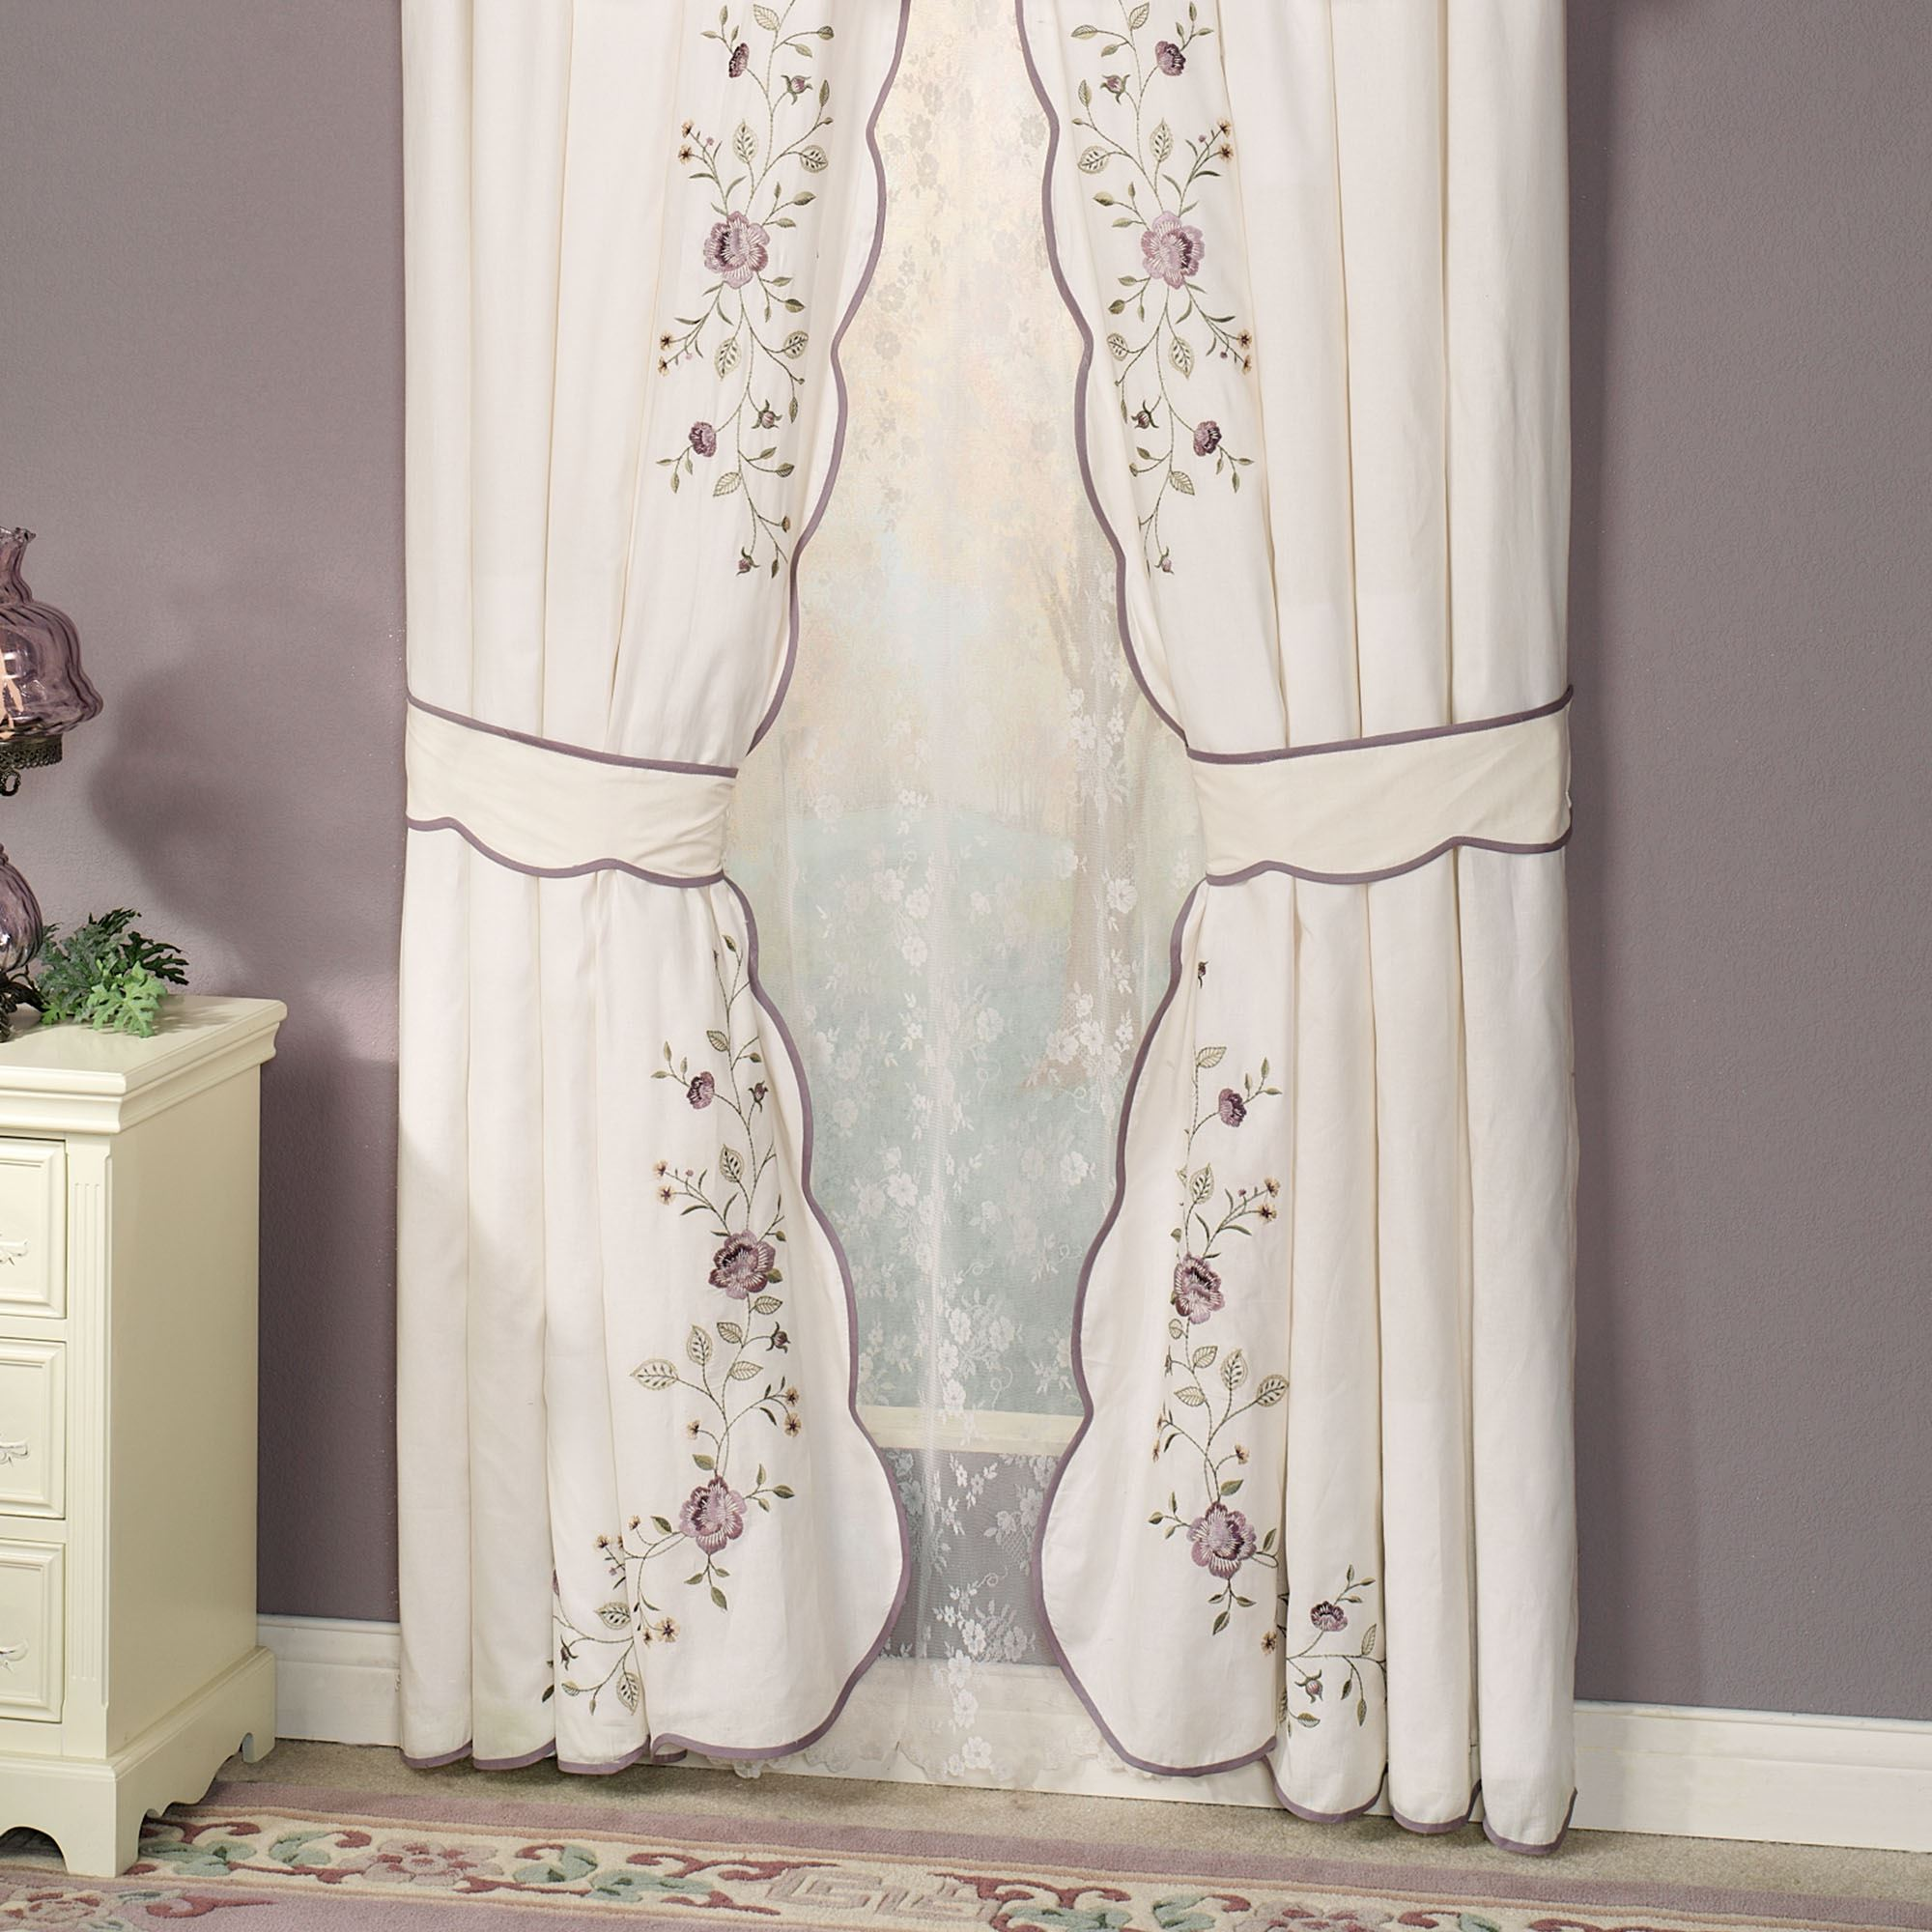 Vintage bloom embroidered window treatments for Flowery curtains design